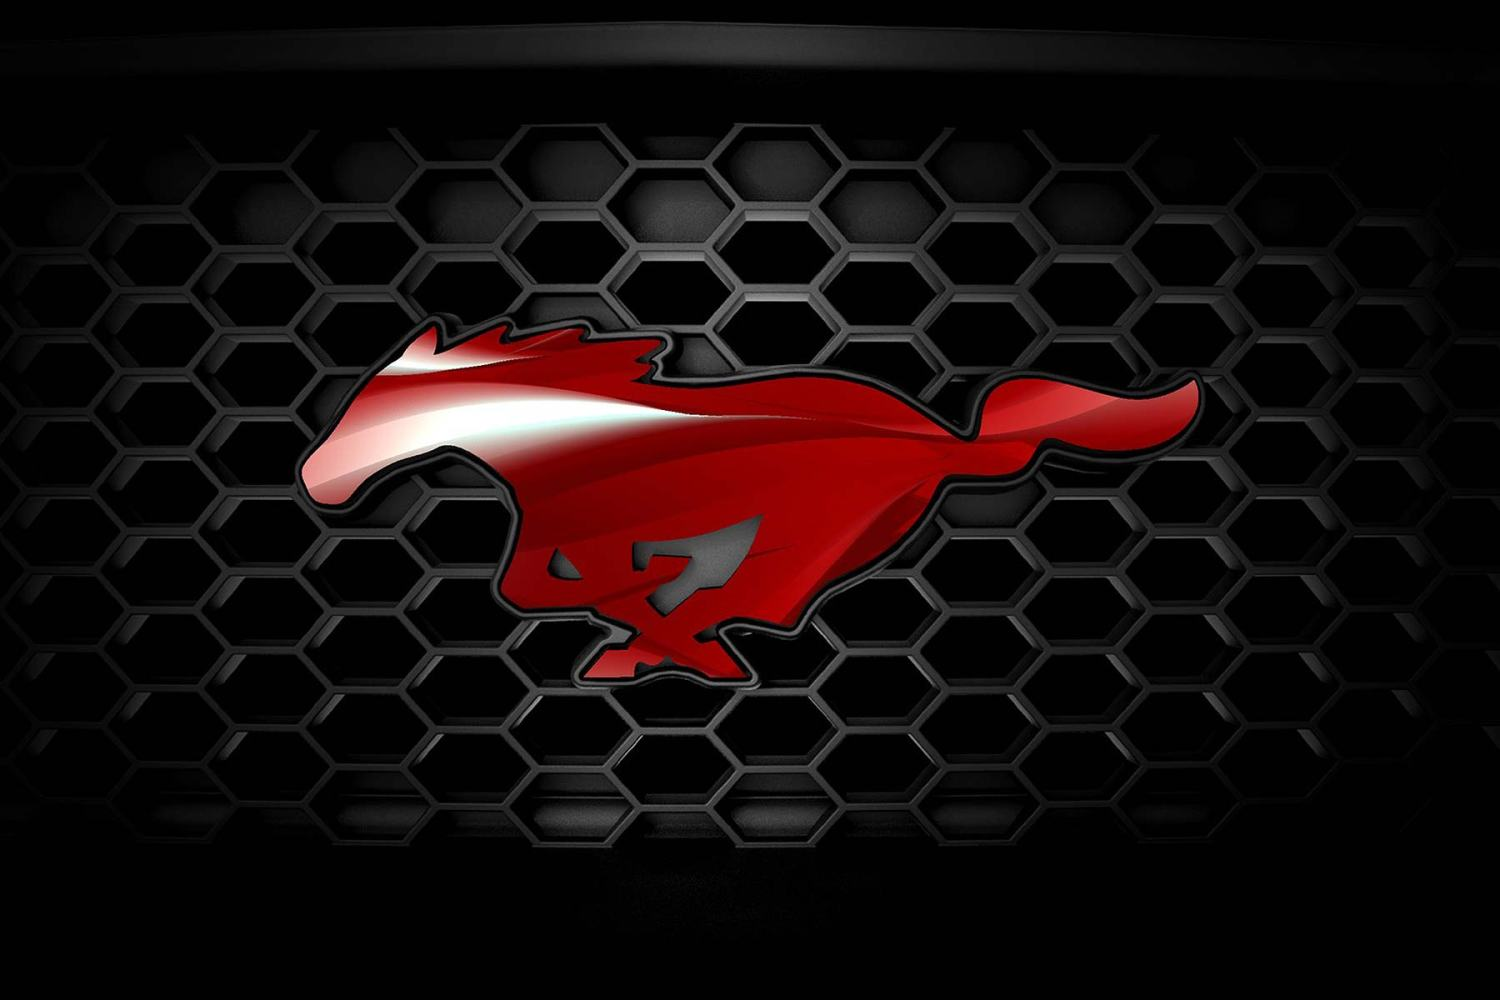 Ford Mustang badge customizer